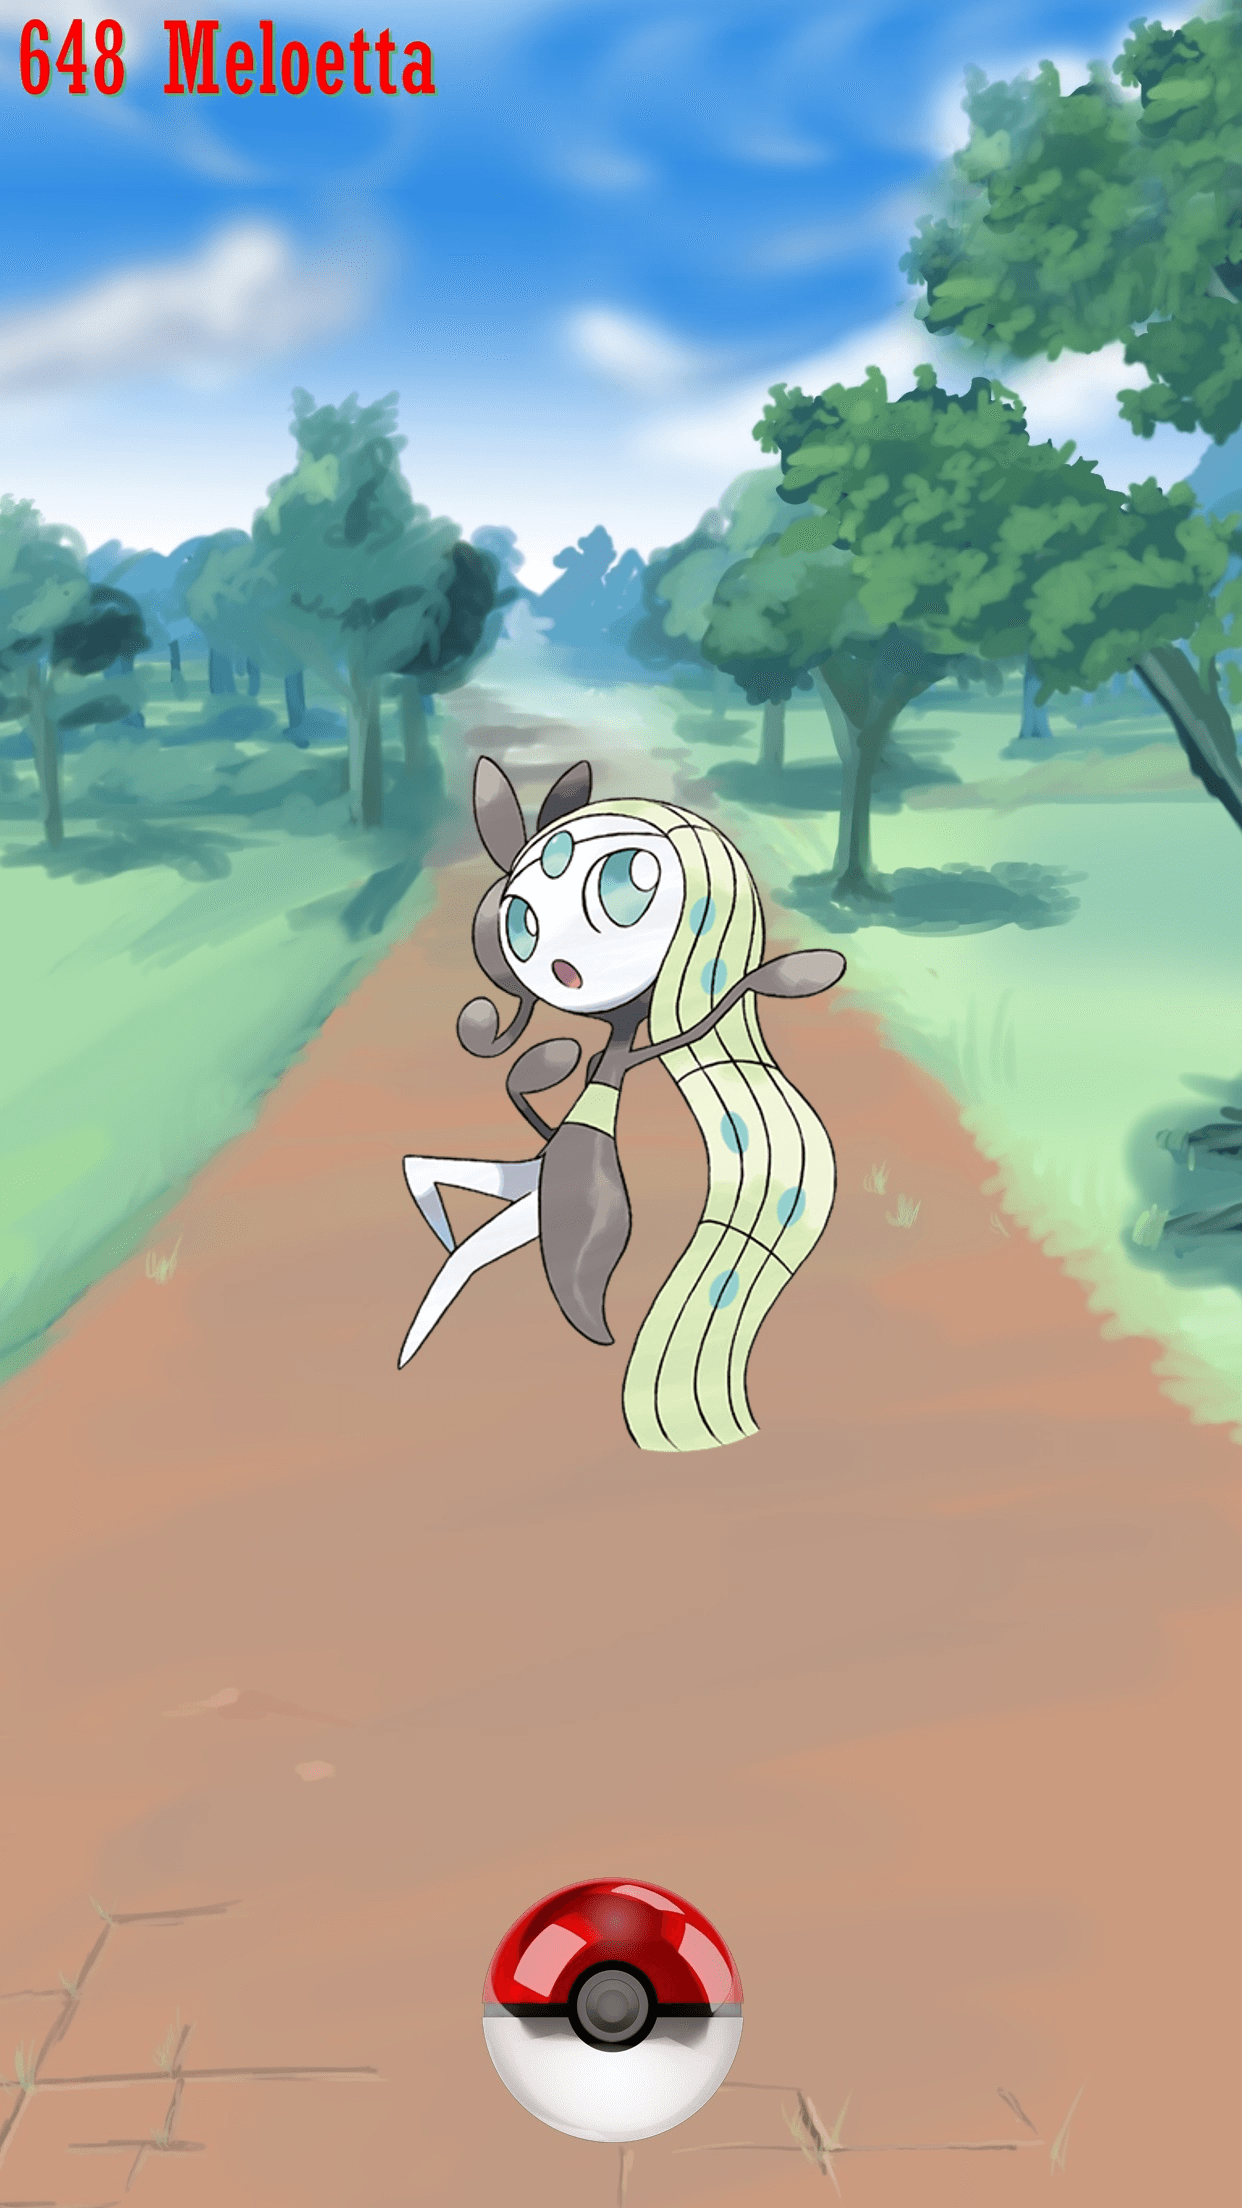 648 Street Pokeball Meloetta | Wallpaper